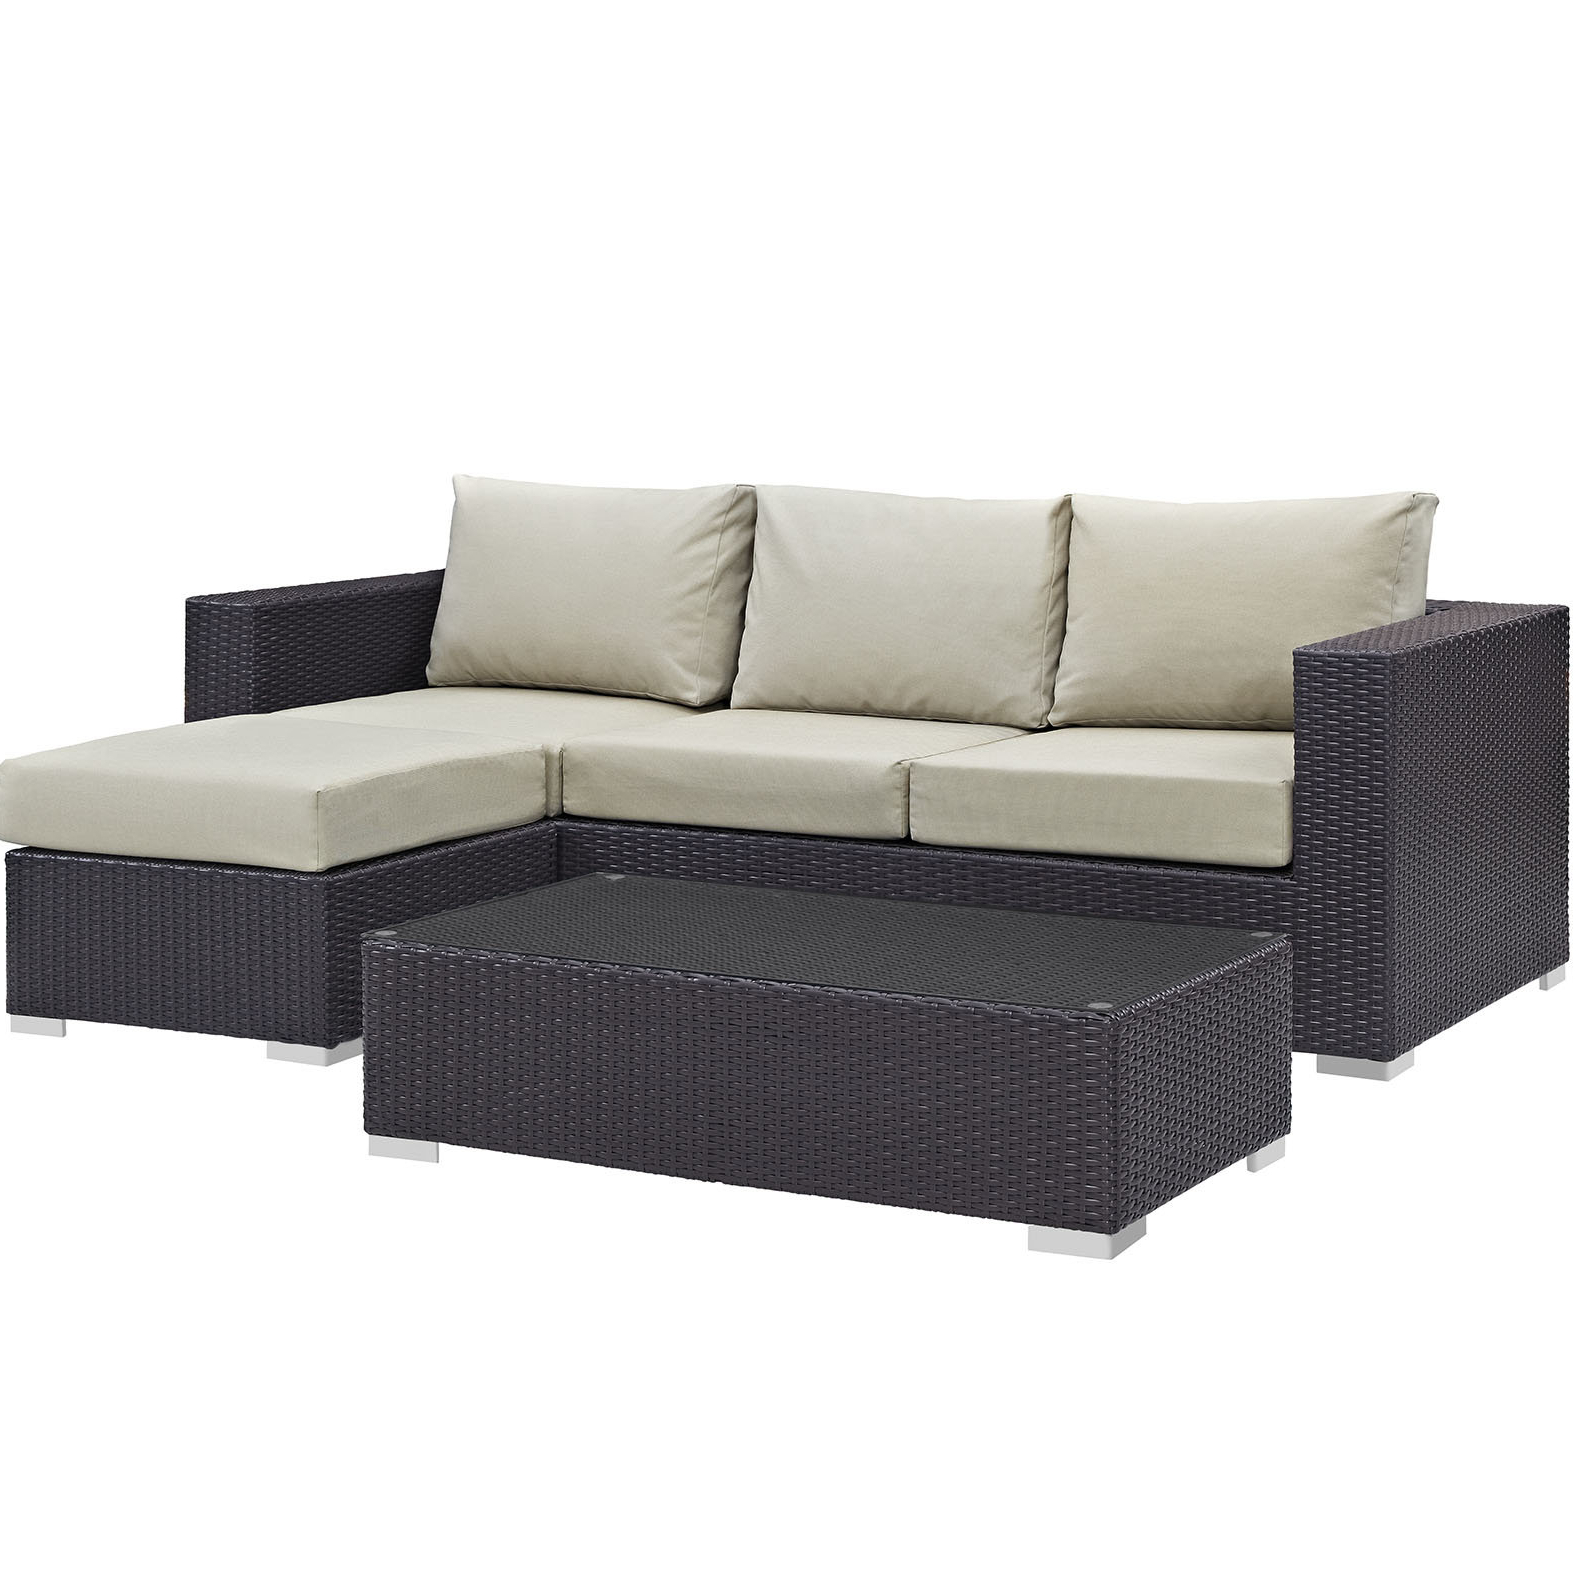 Best And Newest Brentwood Patio Sofas With Cushions In Brentwood 3 Piece Rattan Sectional Seating Group With Cushion (View 11 of 18)